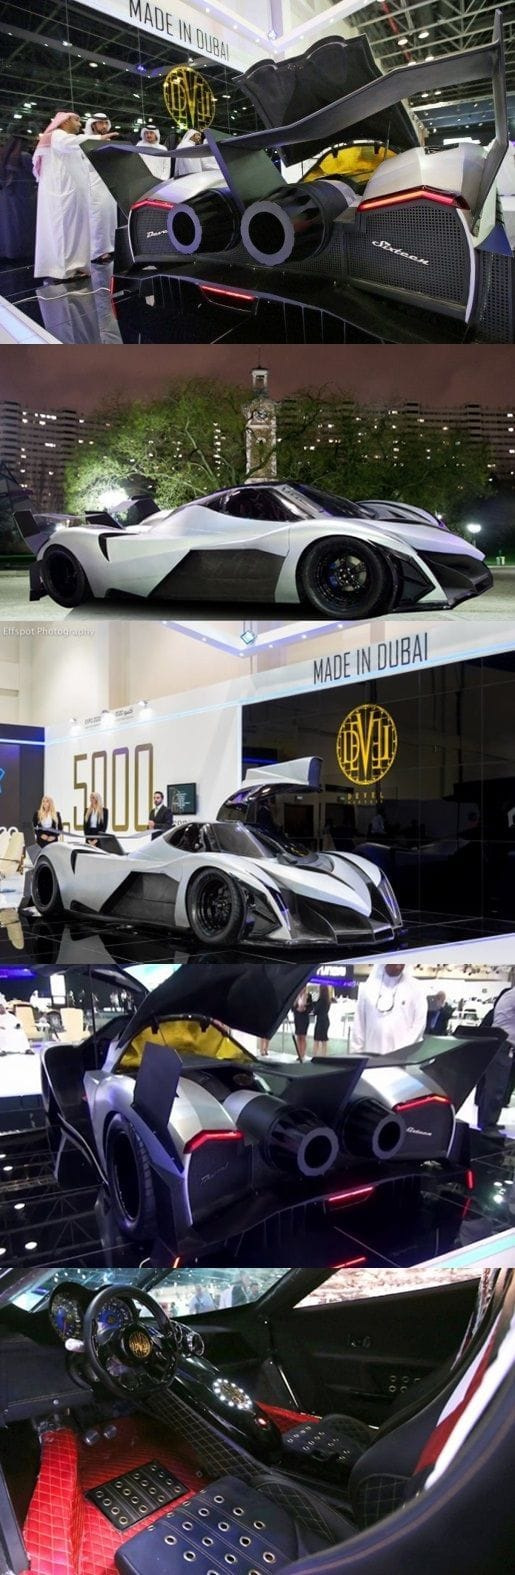 "What Do You Think Of The New ''Devel Sixteen Hyper"" Best New Concept Car For The Future"